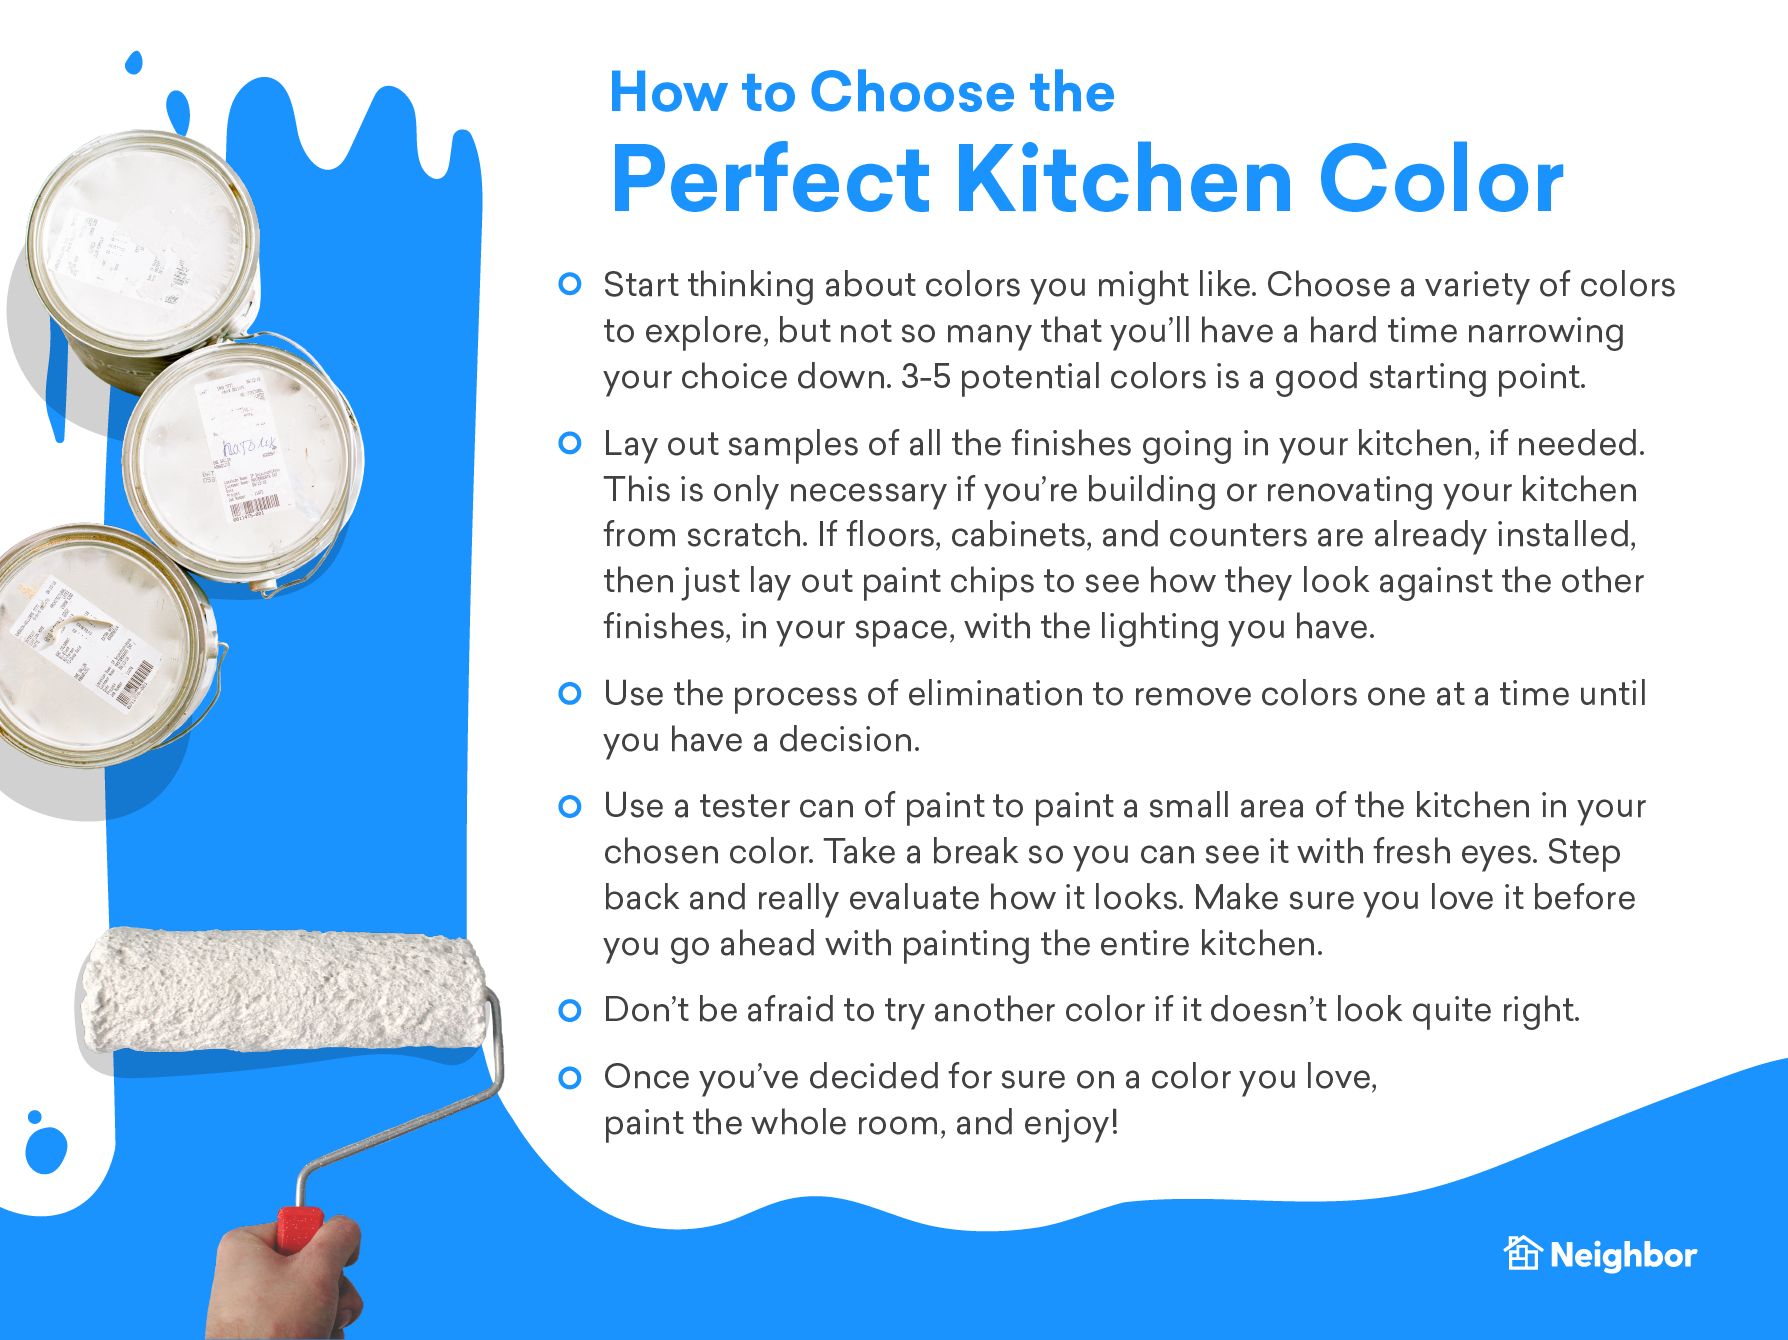 How to Choose the Perfect Kitchen Color